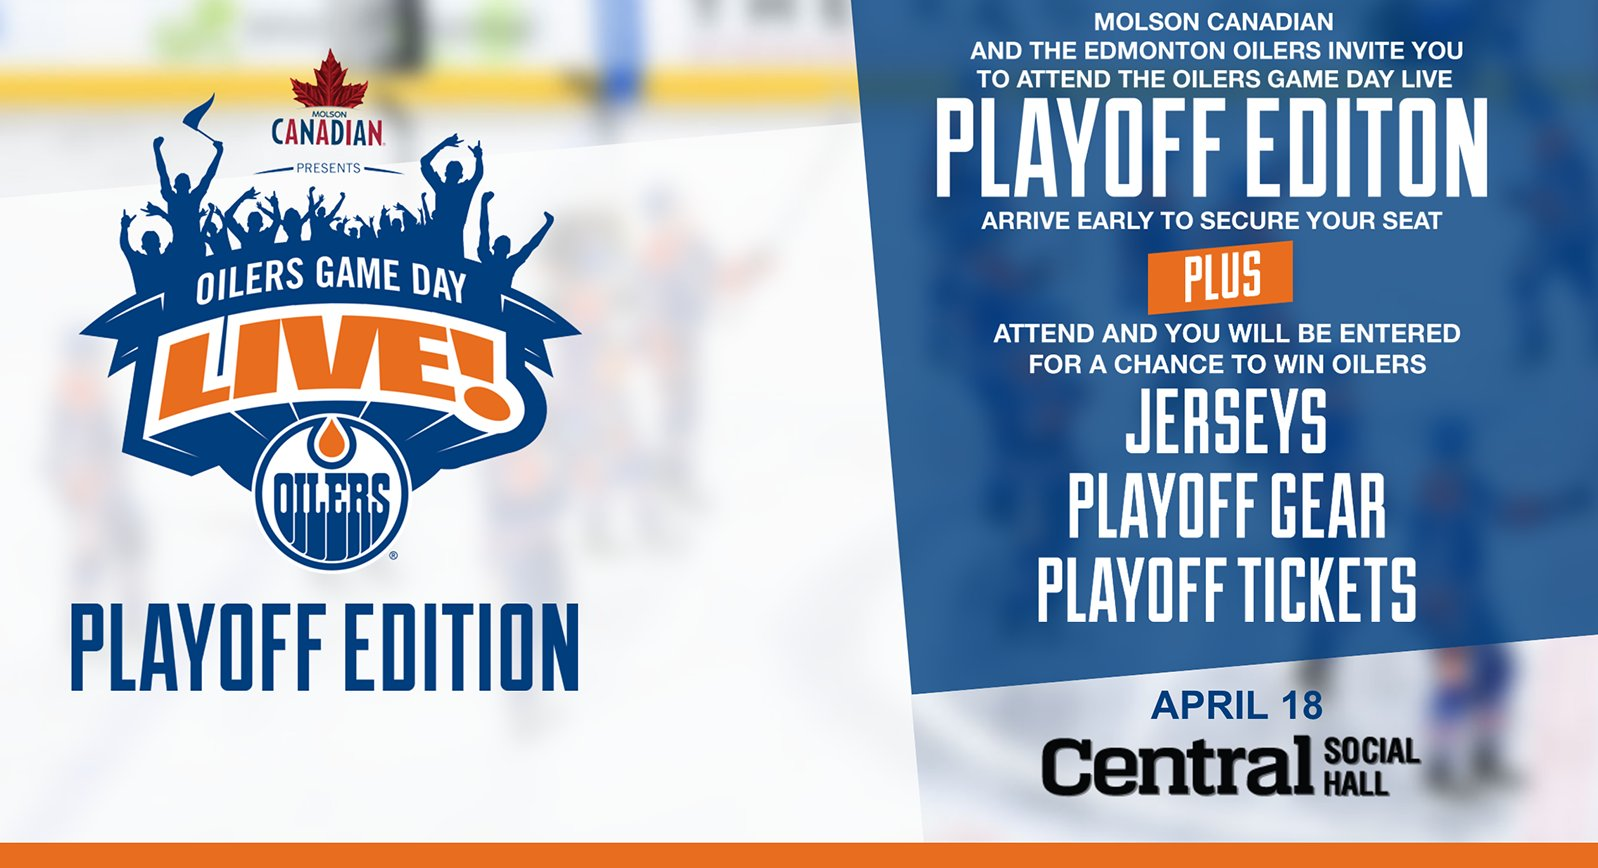 Edmonton Oilers On Twitter Tuesday Molson Canadian Gamedaylive Is Back For The Playoffs Starting With Game 4 At Centralsh Details At Https T Co O53dkktmzg Https T Co A4pmif1sm4